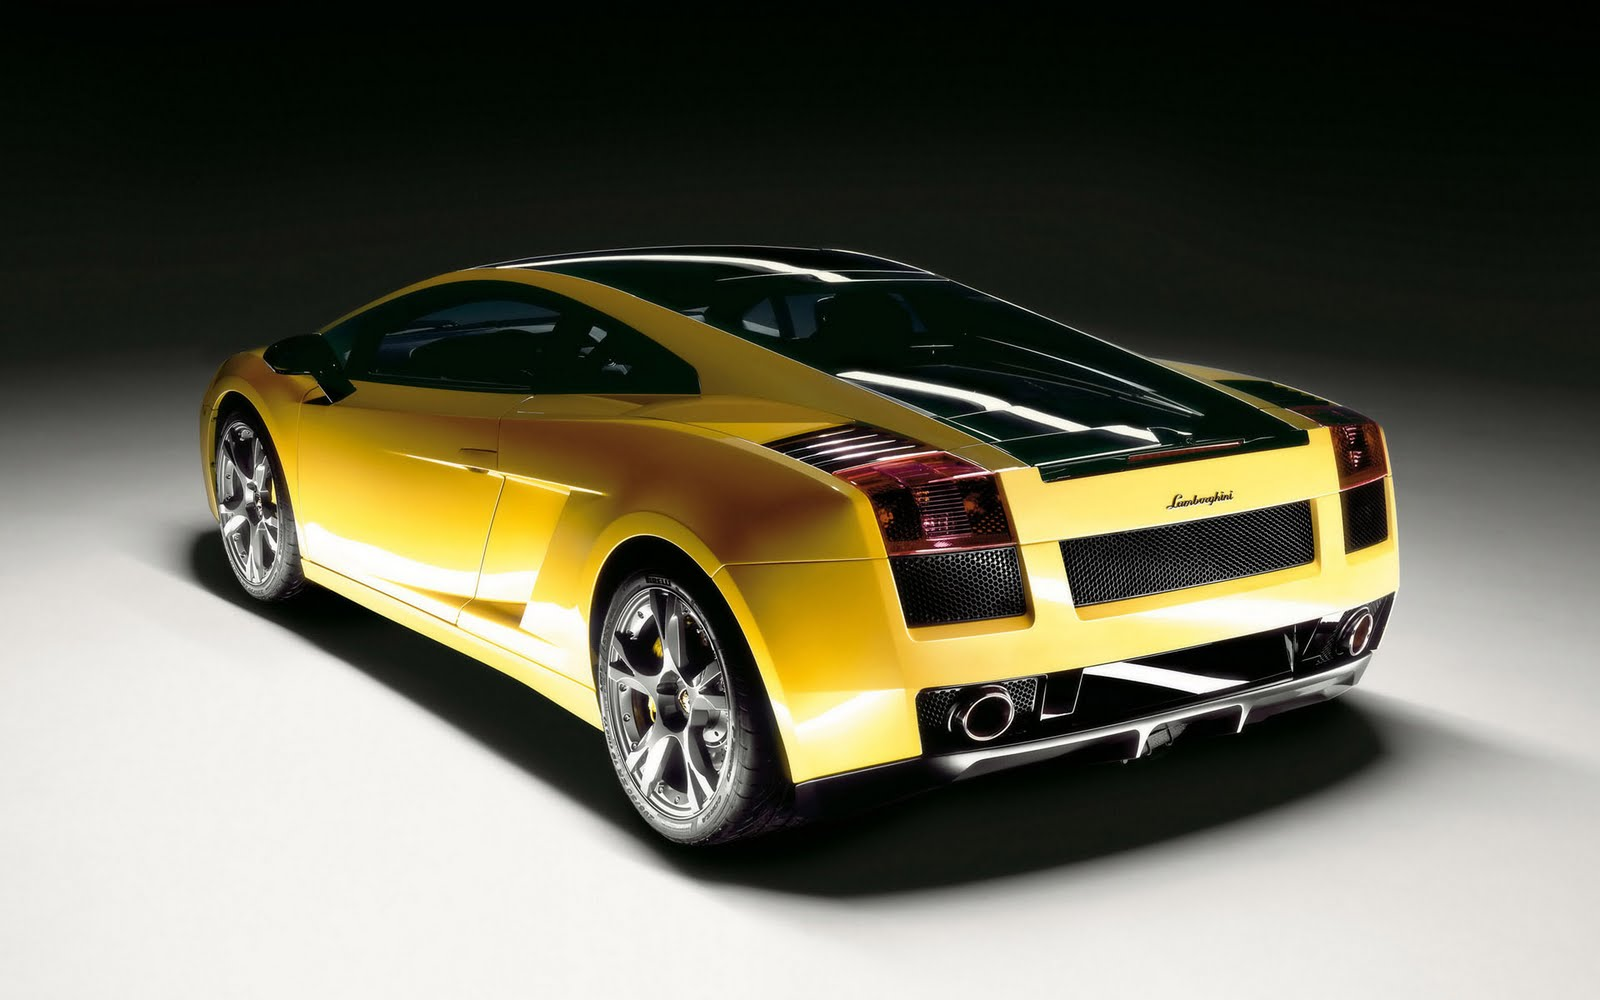 Lamborghini HD Wallpapers Hd Desktop Wallpaper 1600x1000